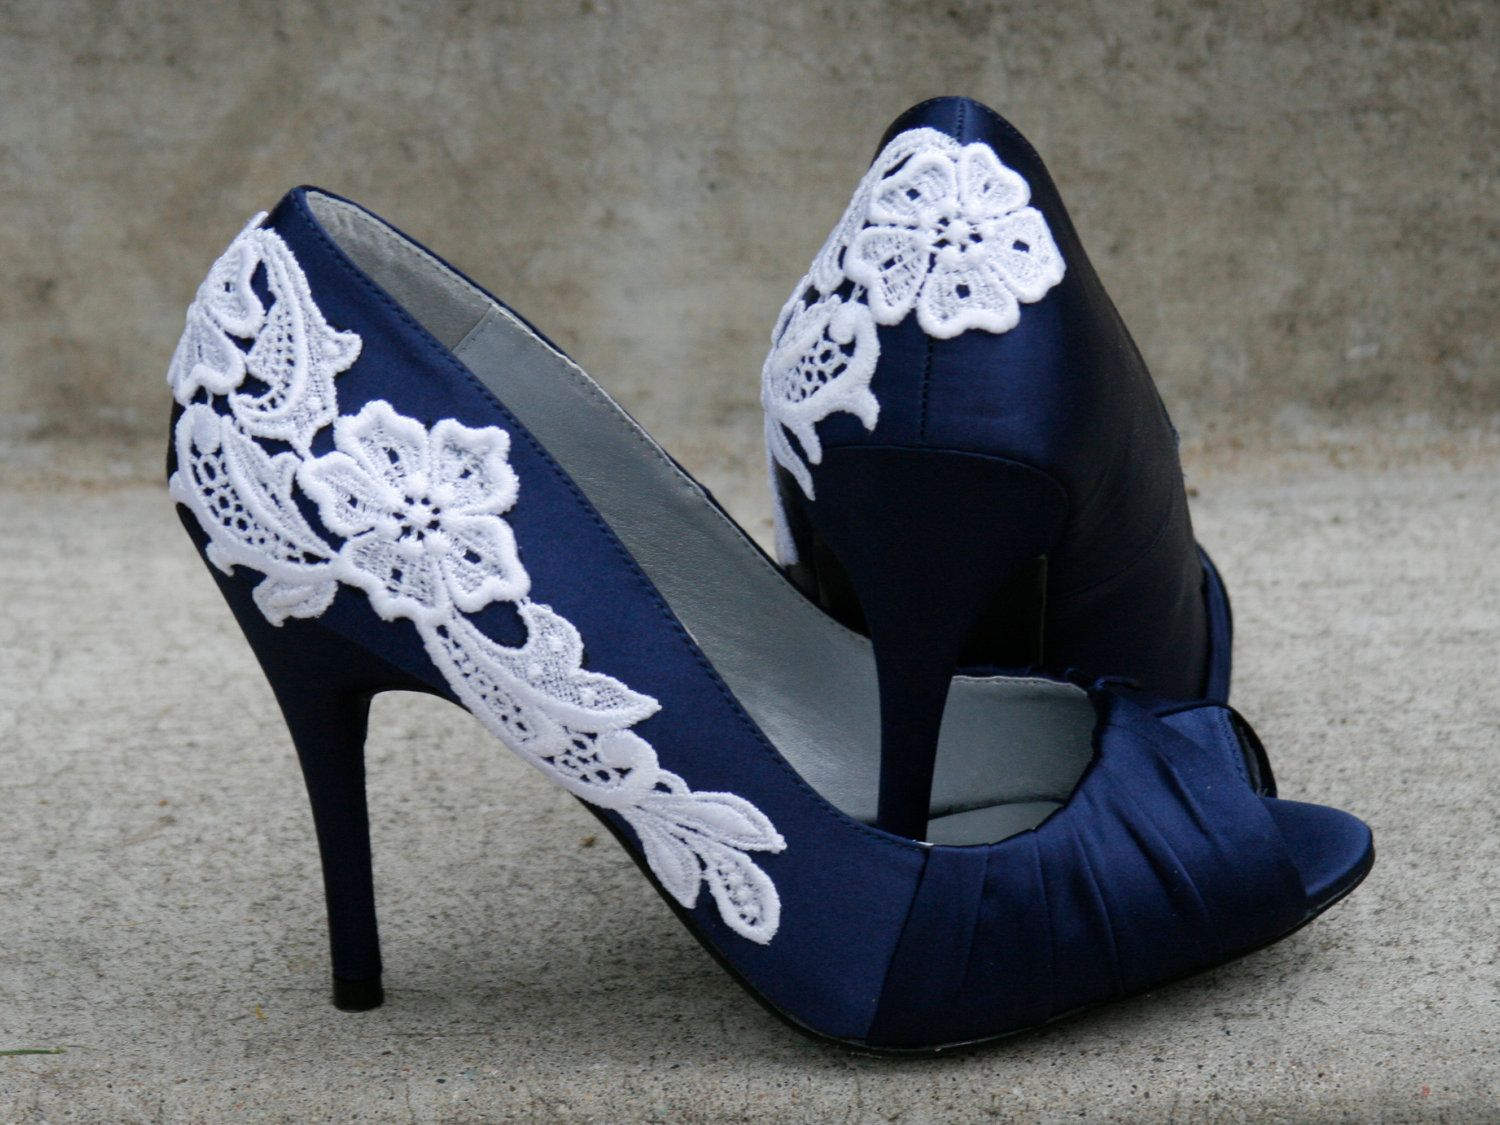 Navy Blue Shoes With Venise Lace Applique. Size 7. $69.00